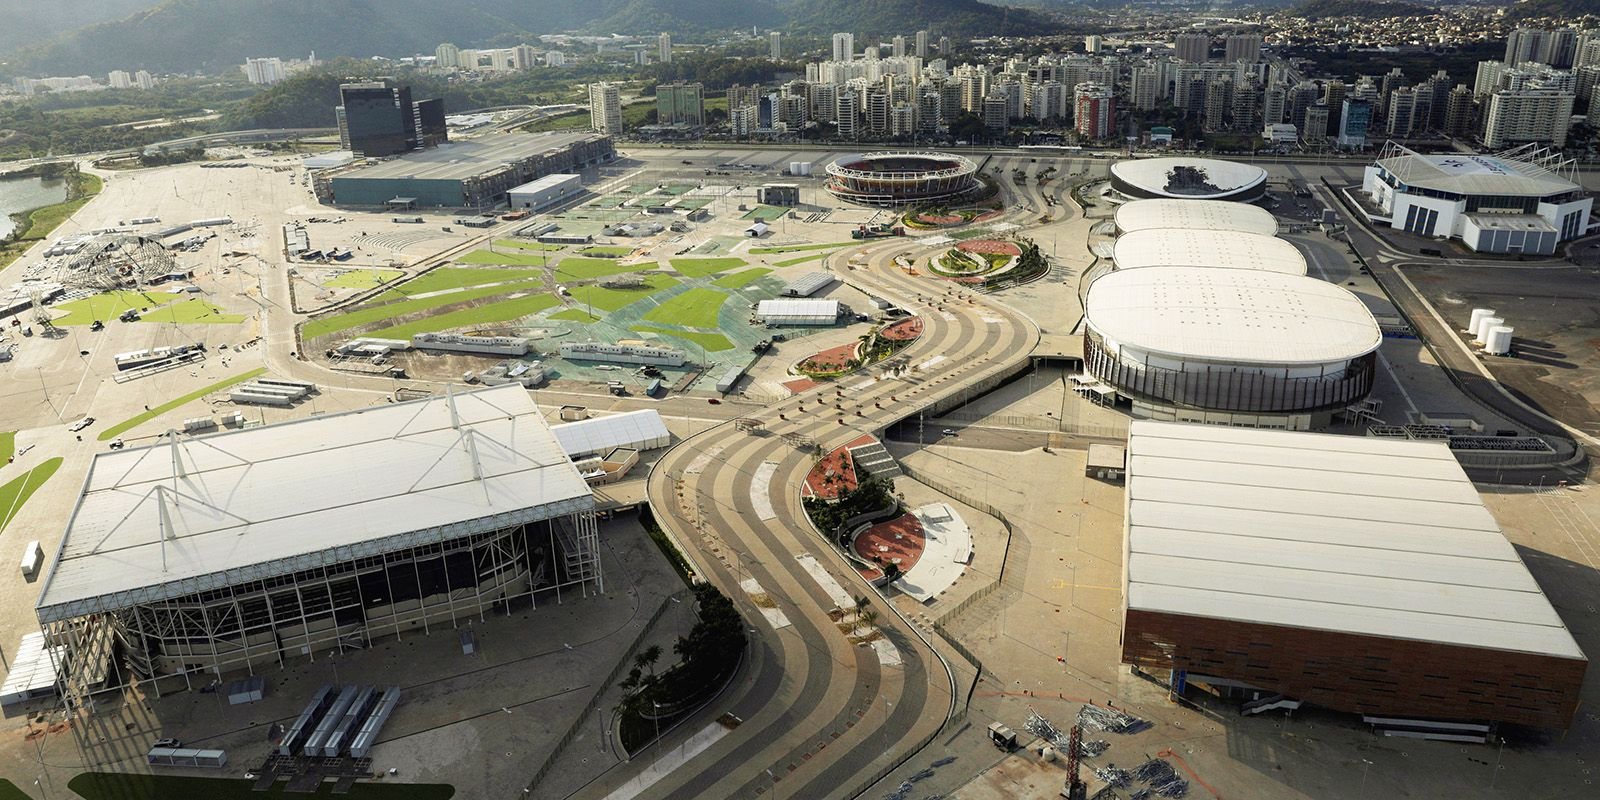 One year after Rio: What's left behind after the flame goes out